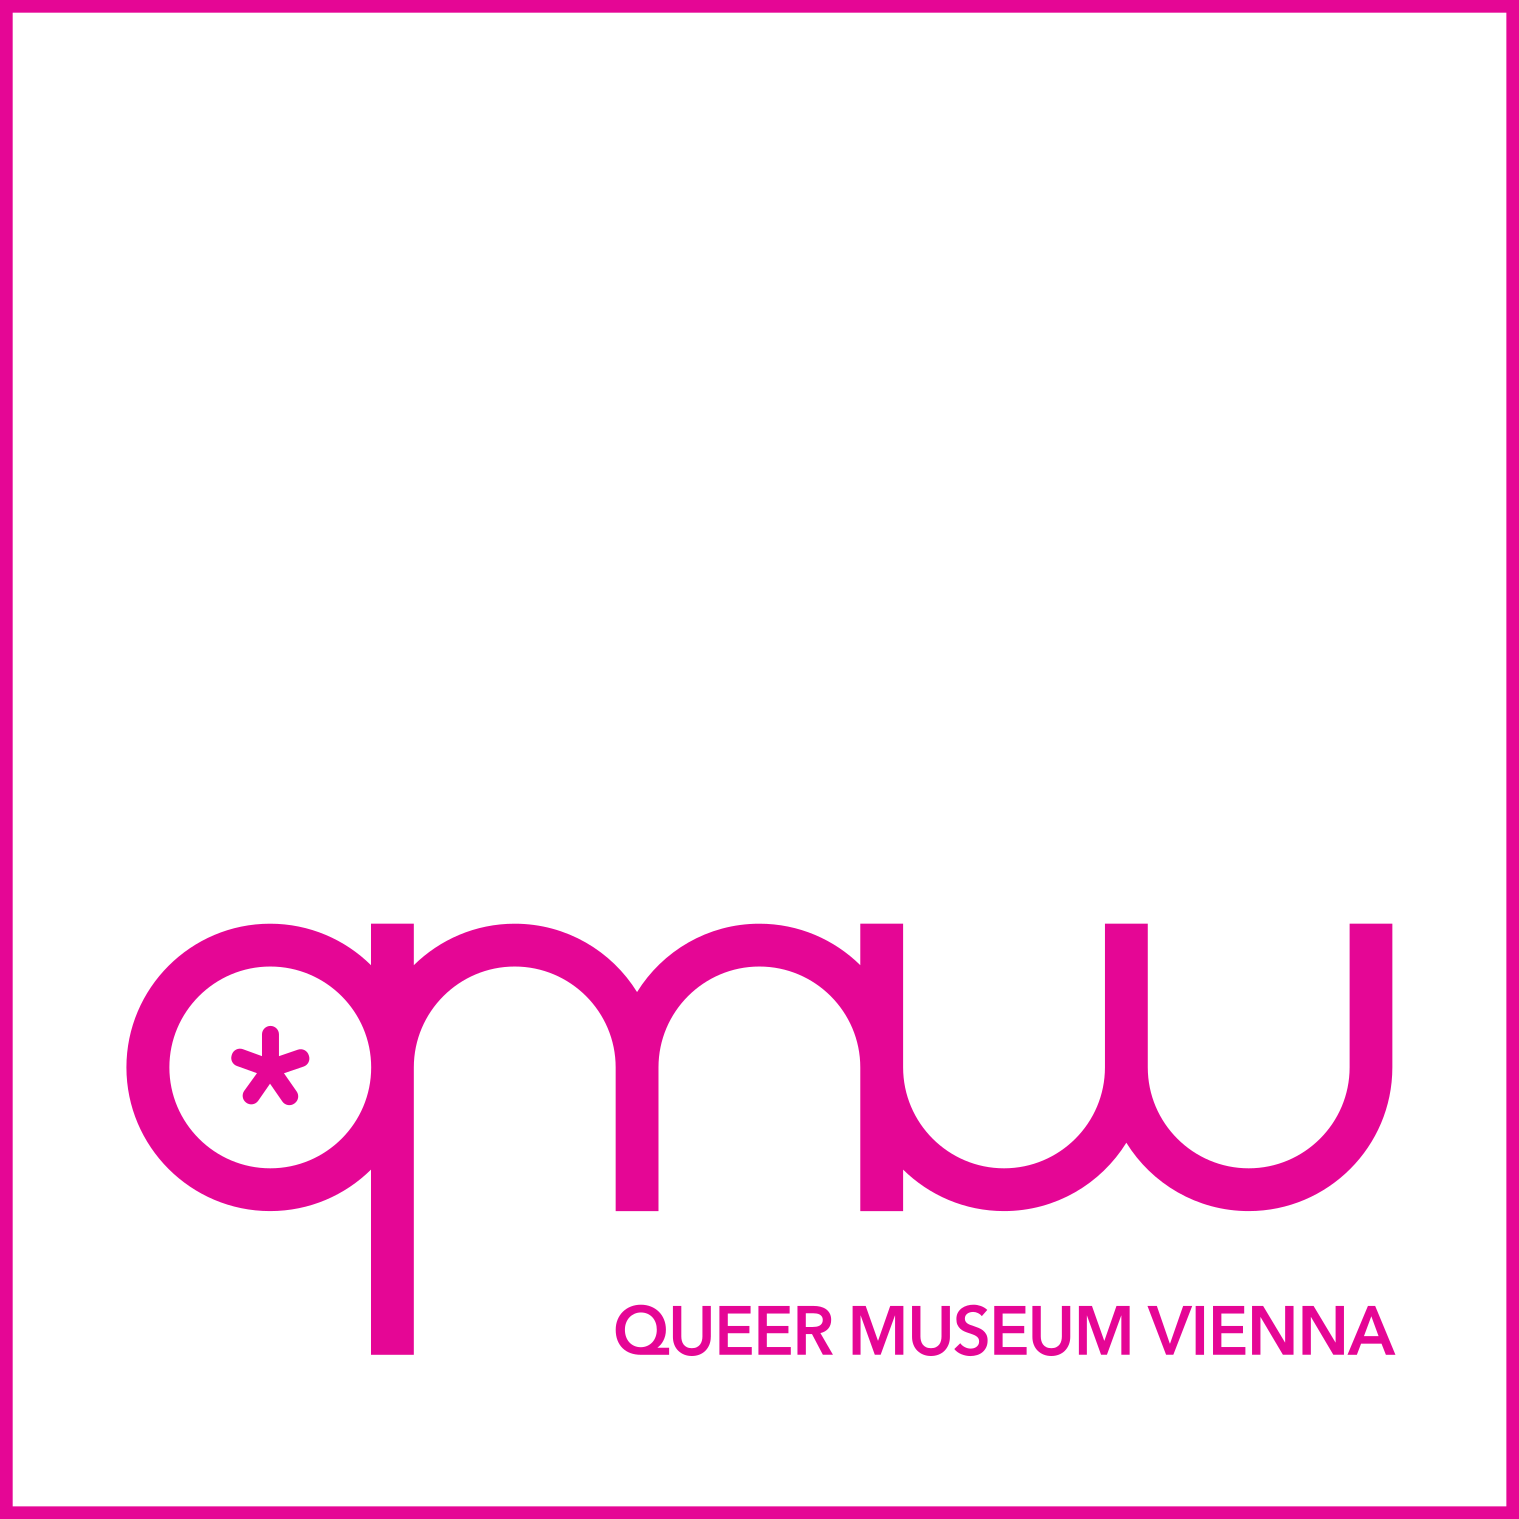 German Logo of the Queer Museum Vienna consists of rounded versions of the letters q, m, and w with an asterix in the center of the q. They are magenta on a monochrome white background.